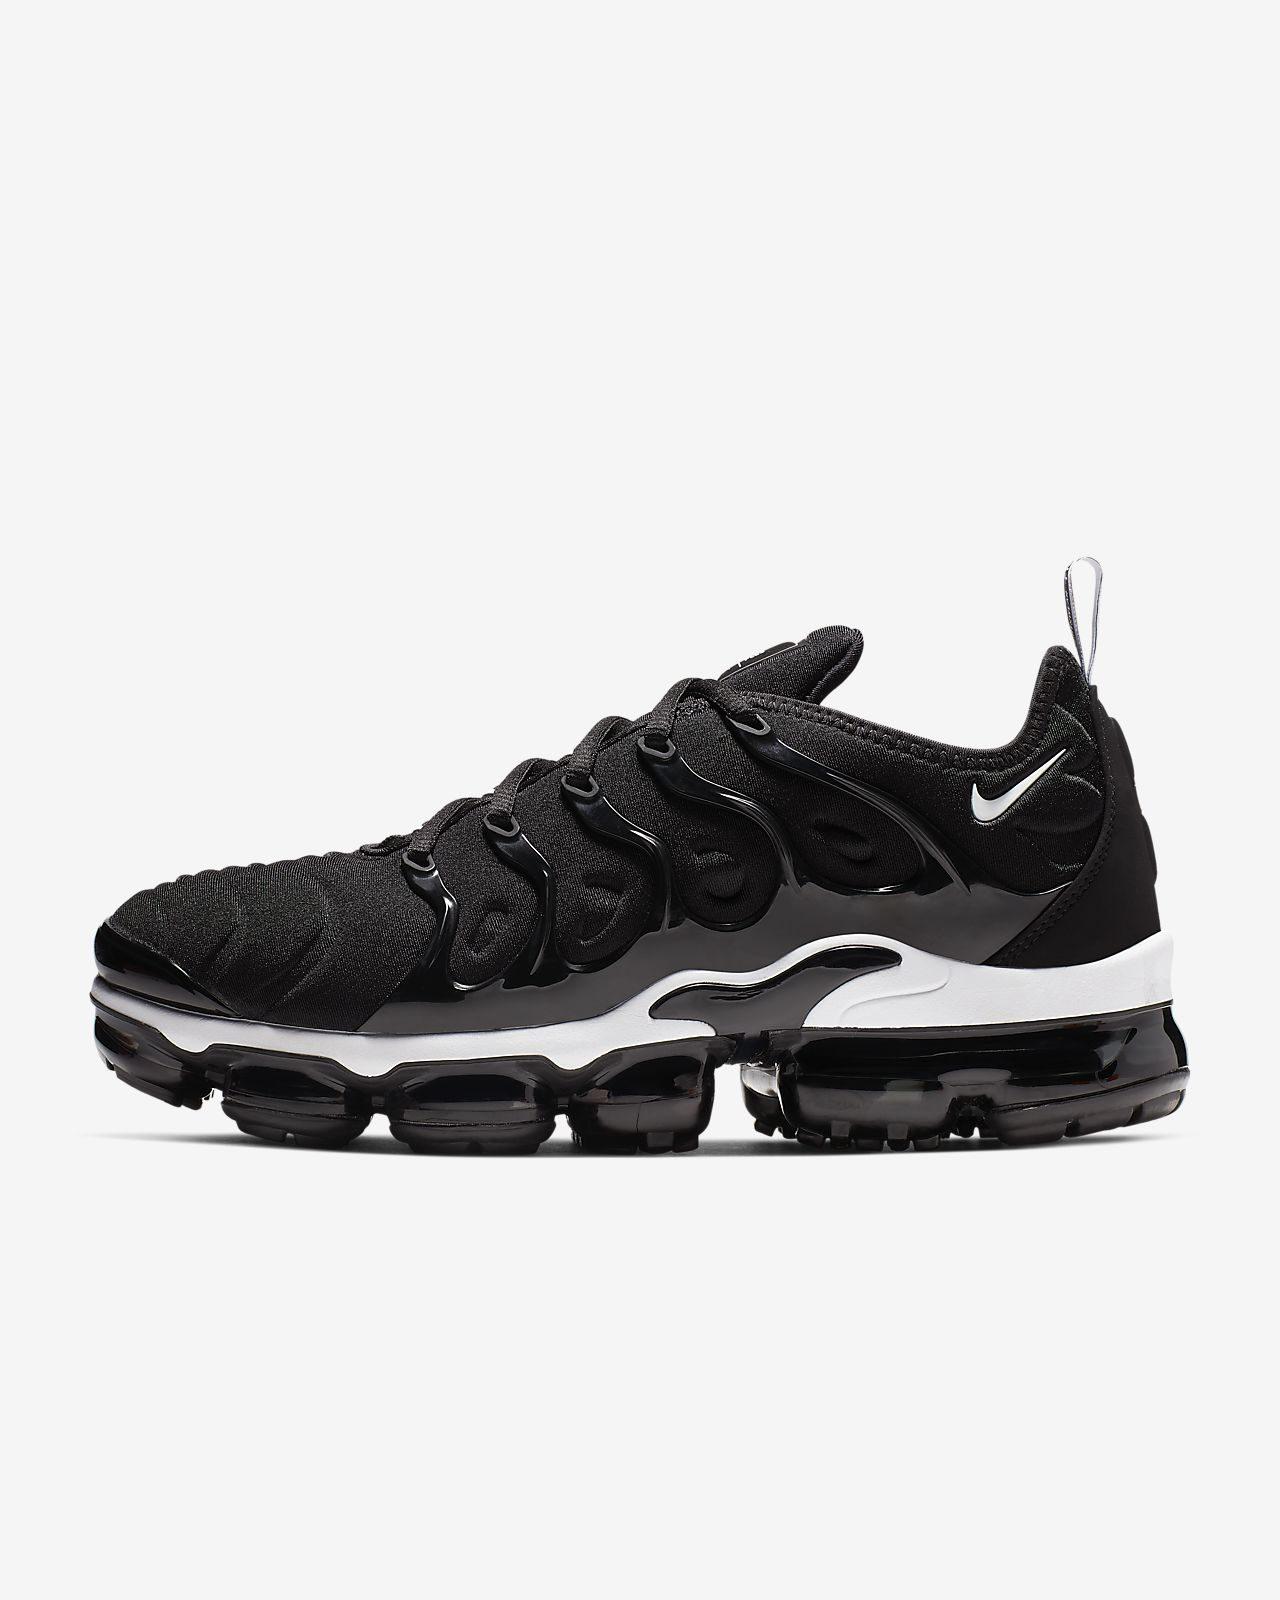 cc9dd32834b Nike Air VaporMax Plus Men s Shoe. Nike.com GB